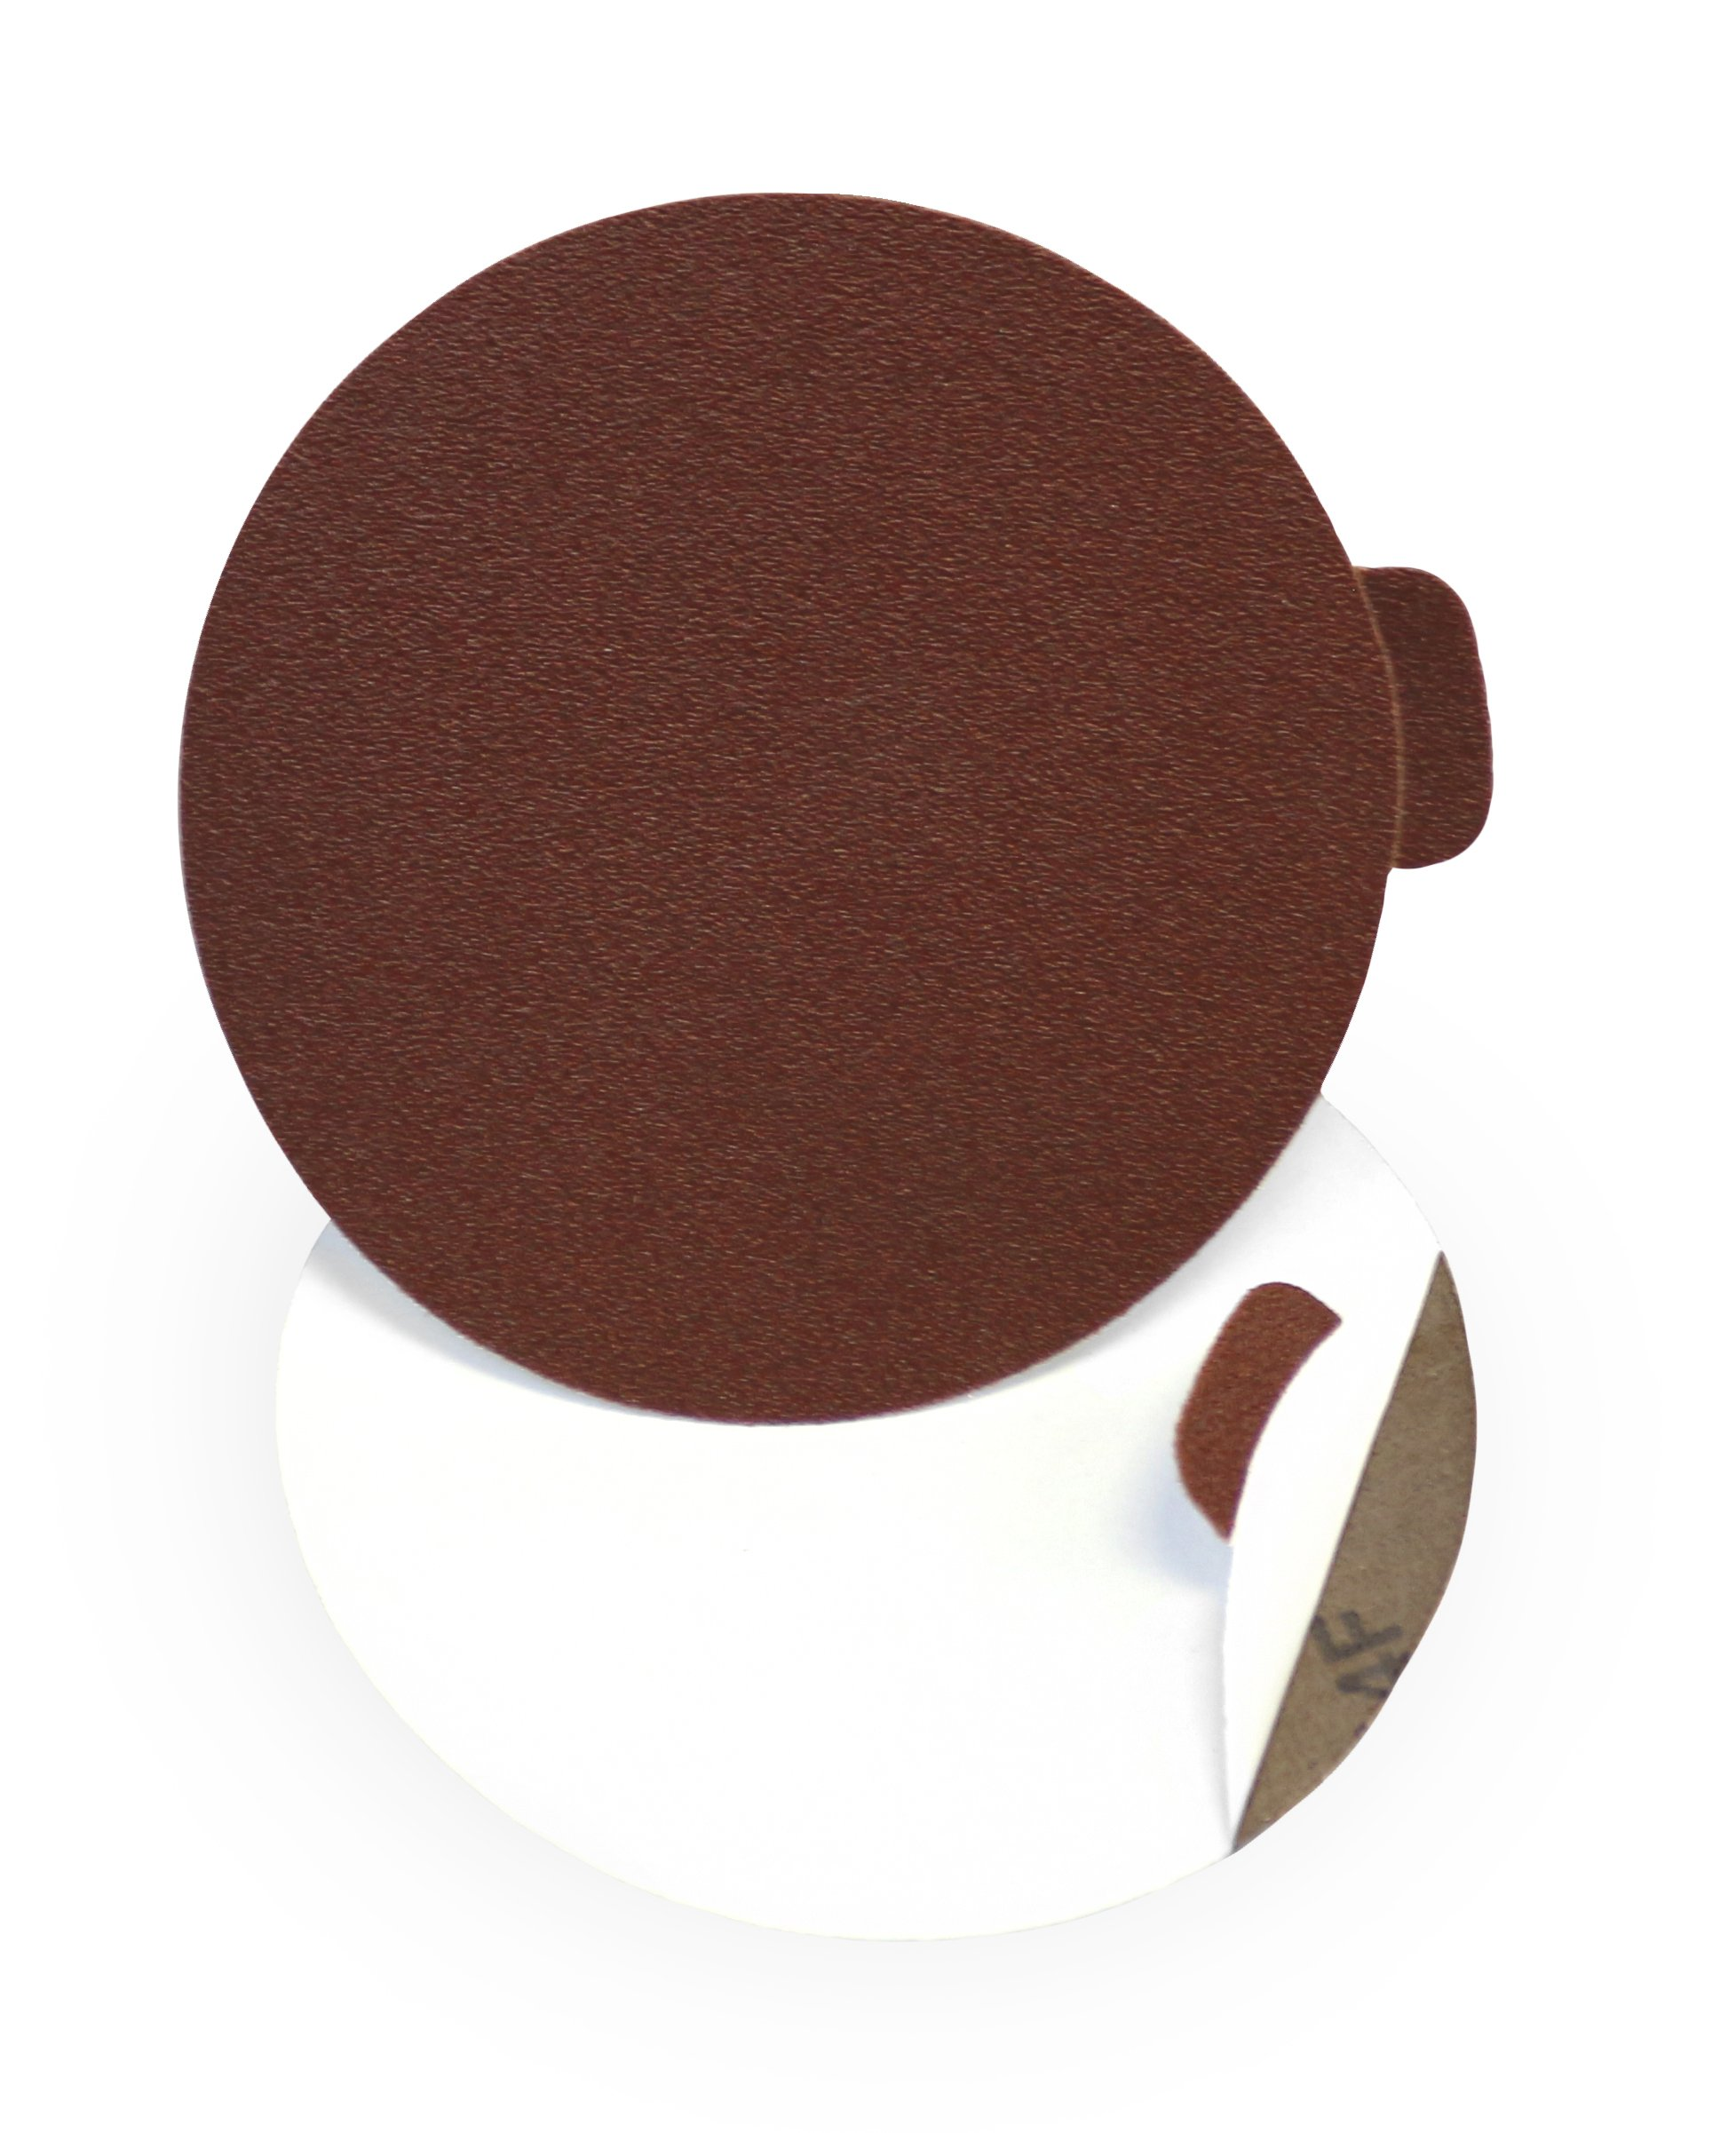 5'' VSM PSA Disc, 120 Grit, Aluminum Oxide, Cloth (Pack of 100)